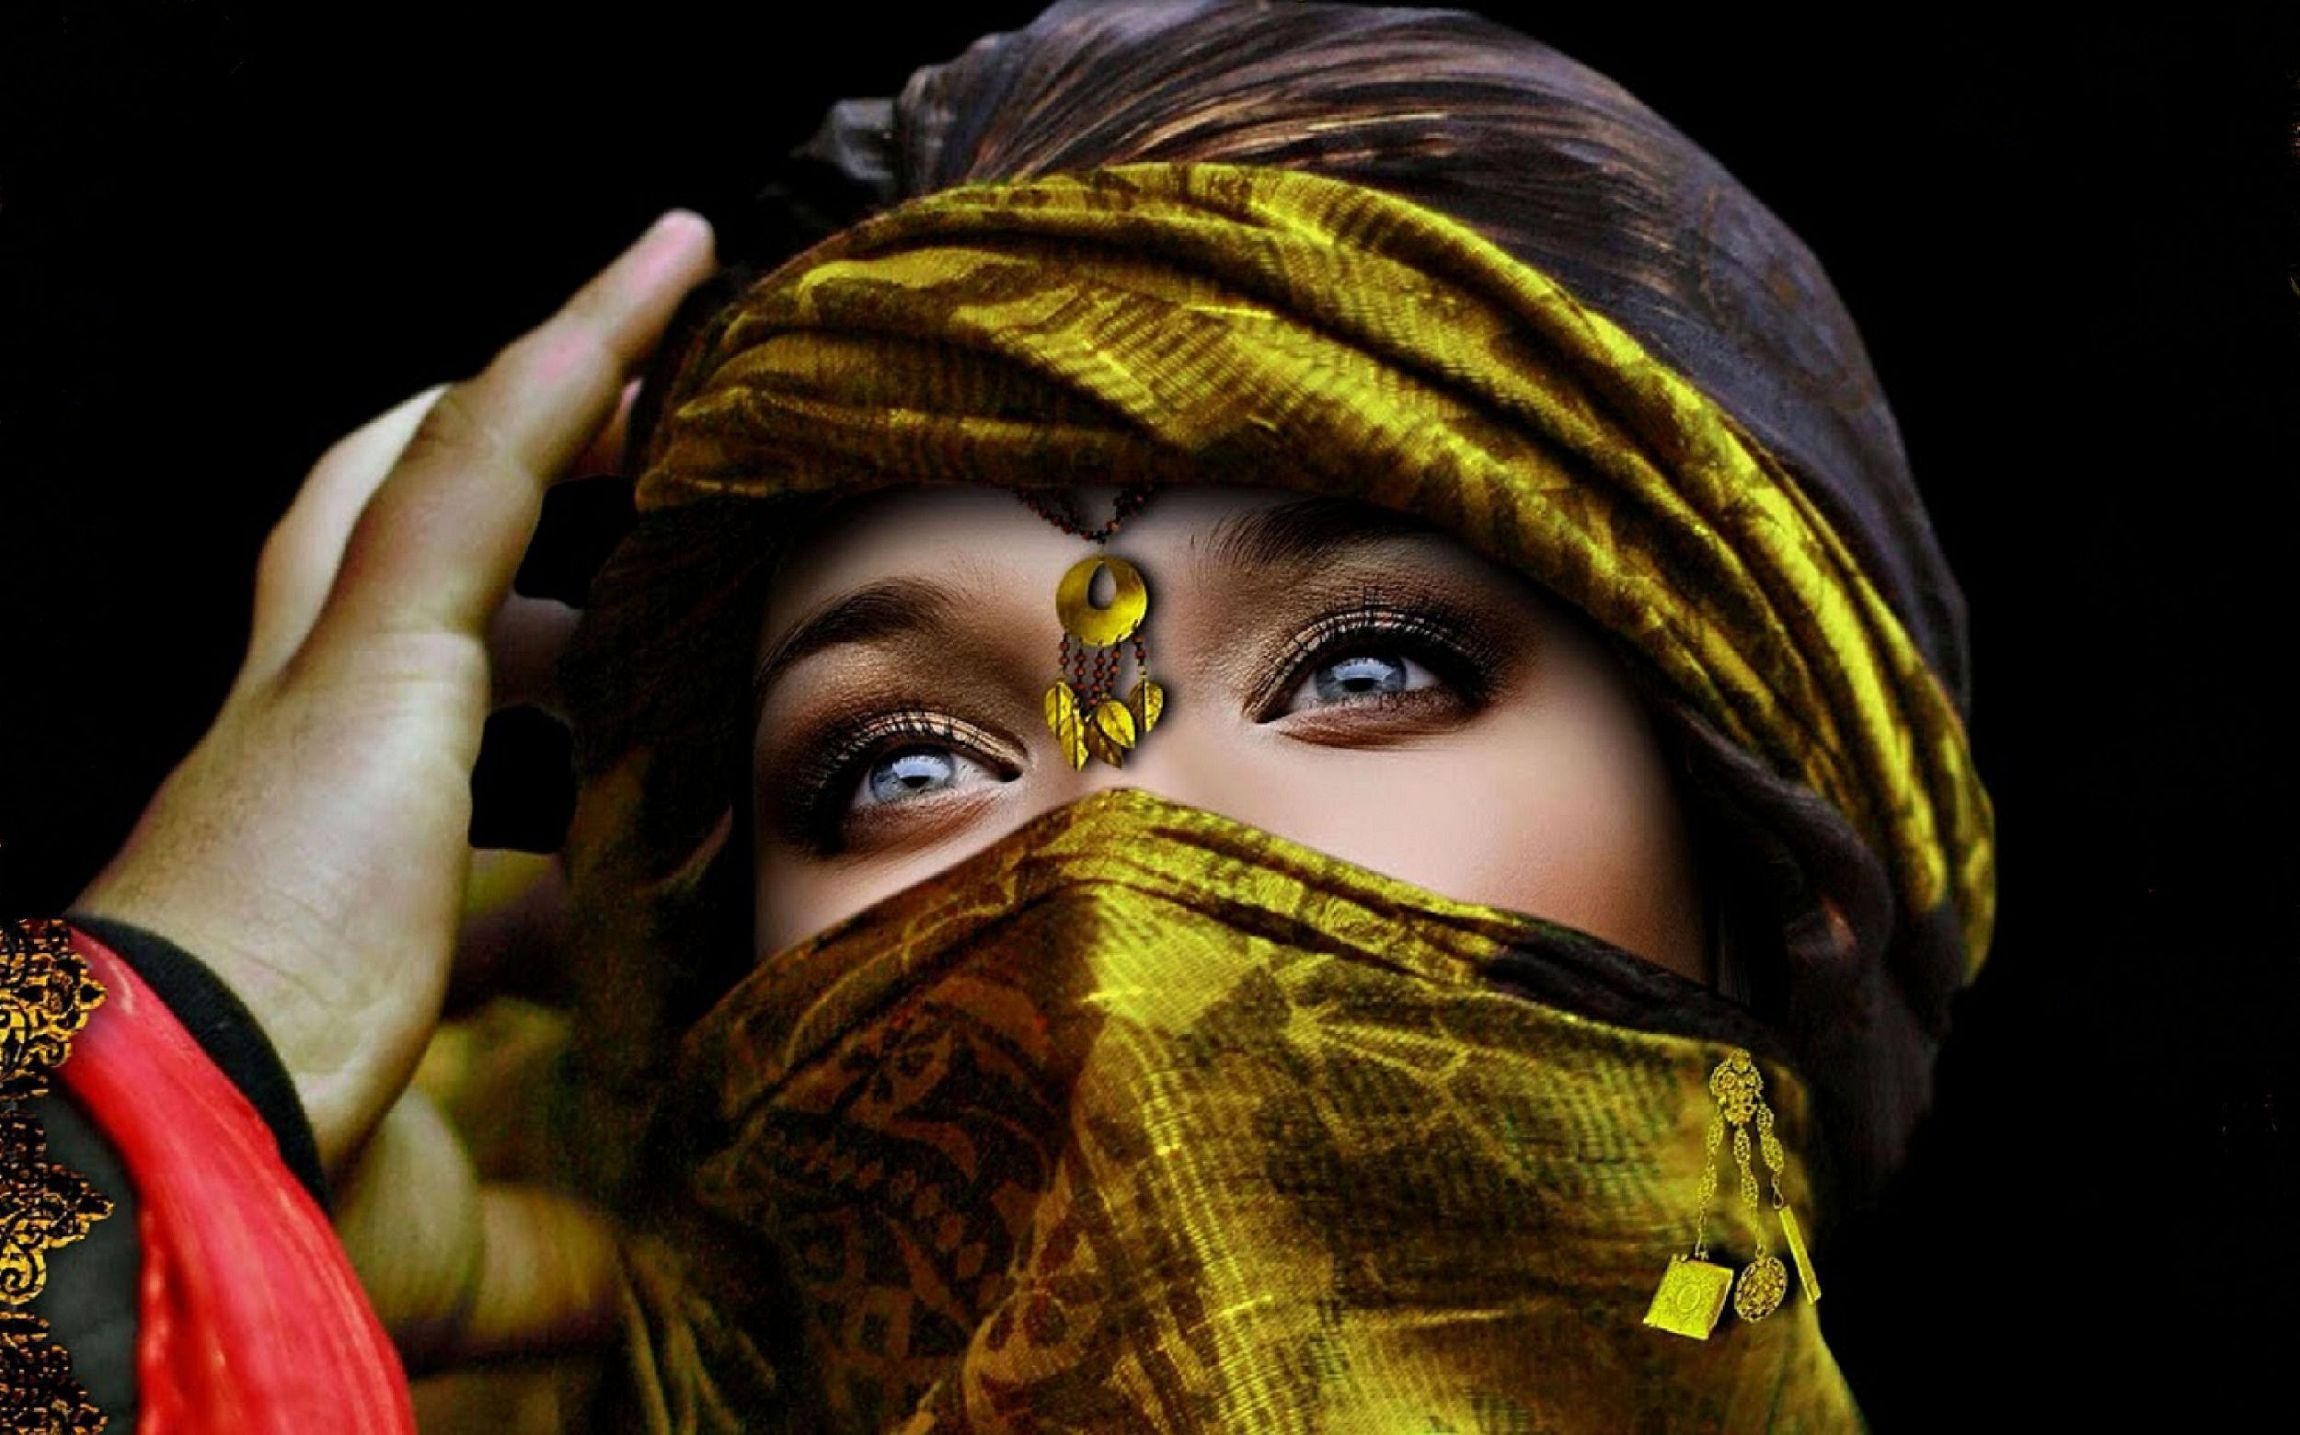 Arab Girl In High Resolution